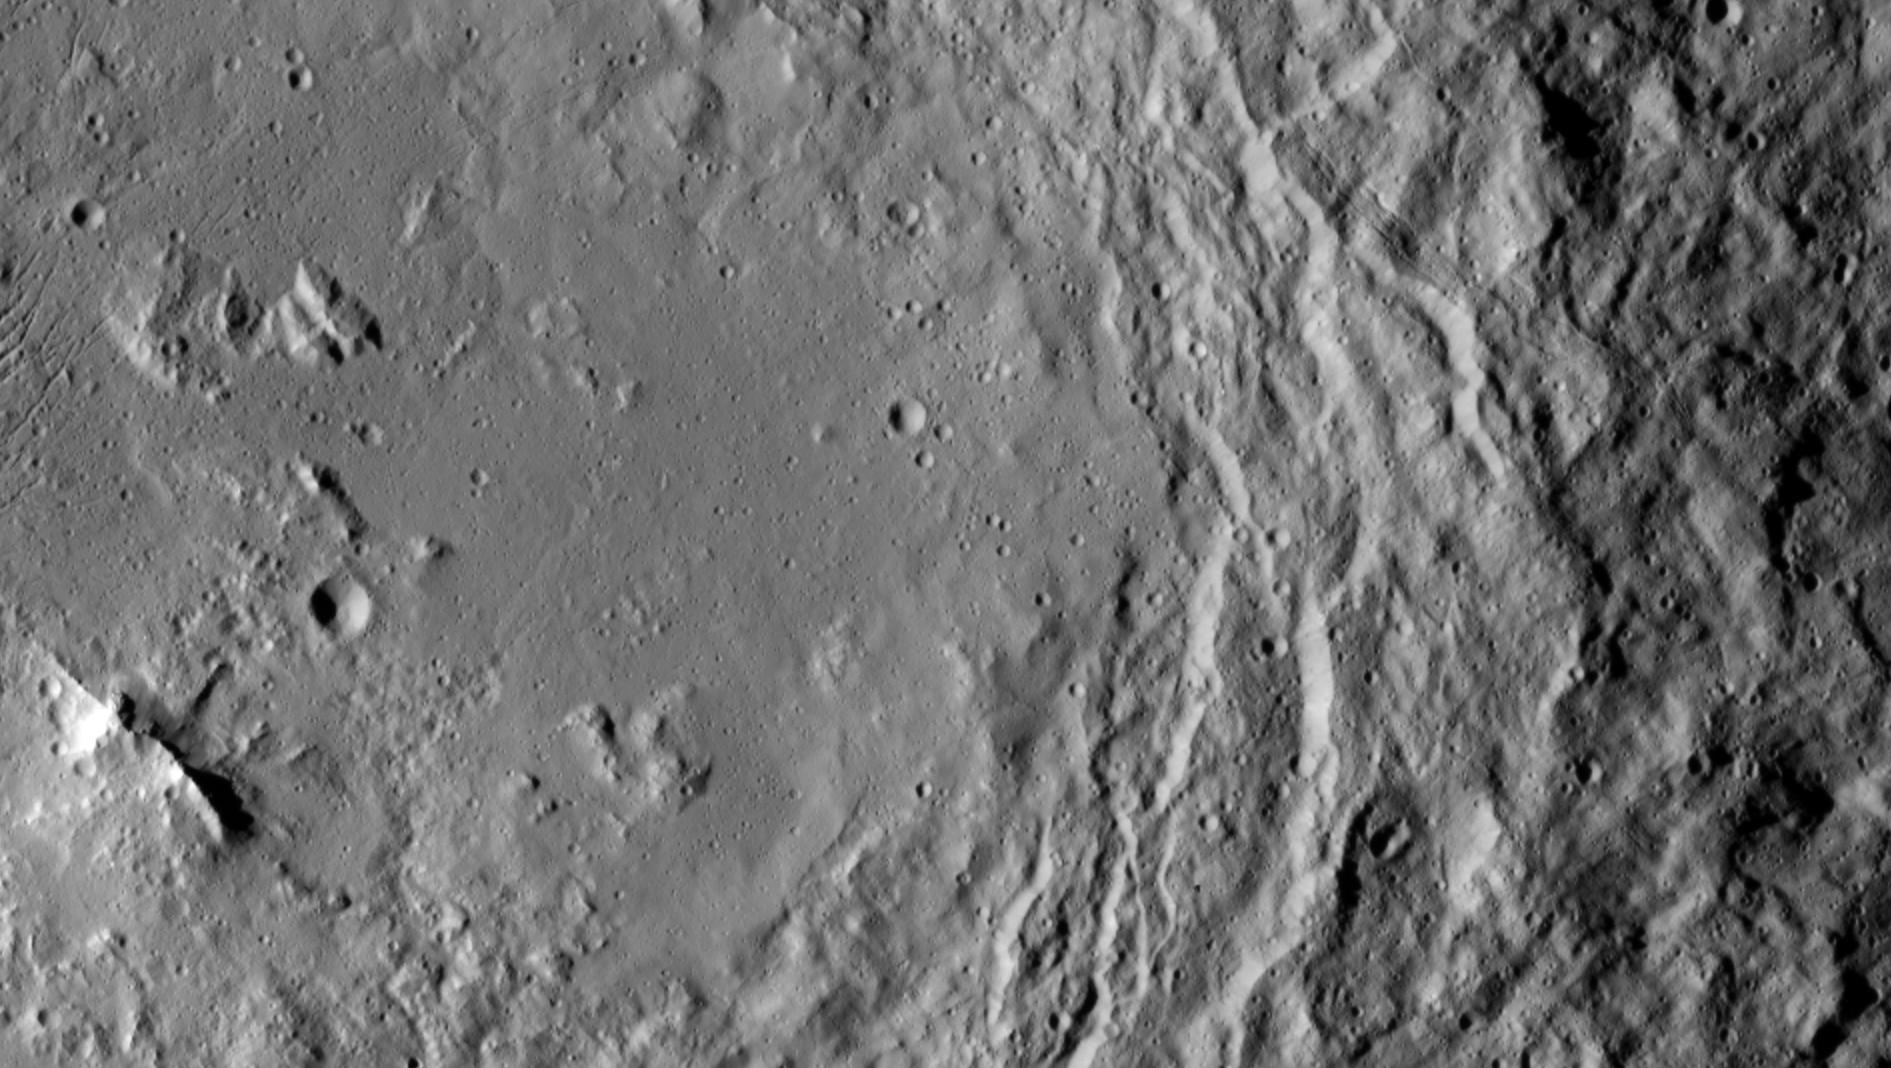 Chain of mountains in Urvara crater